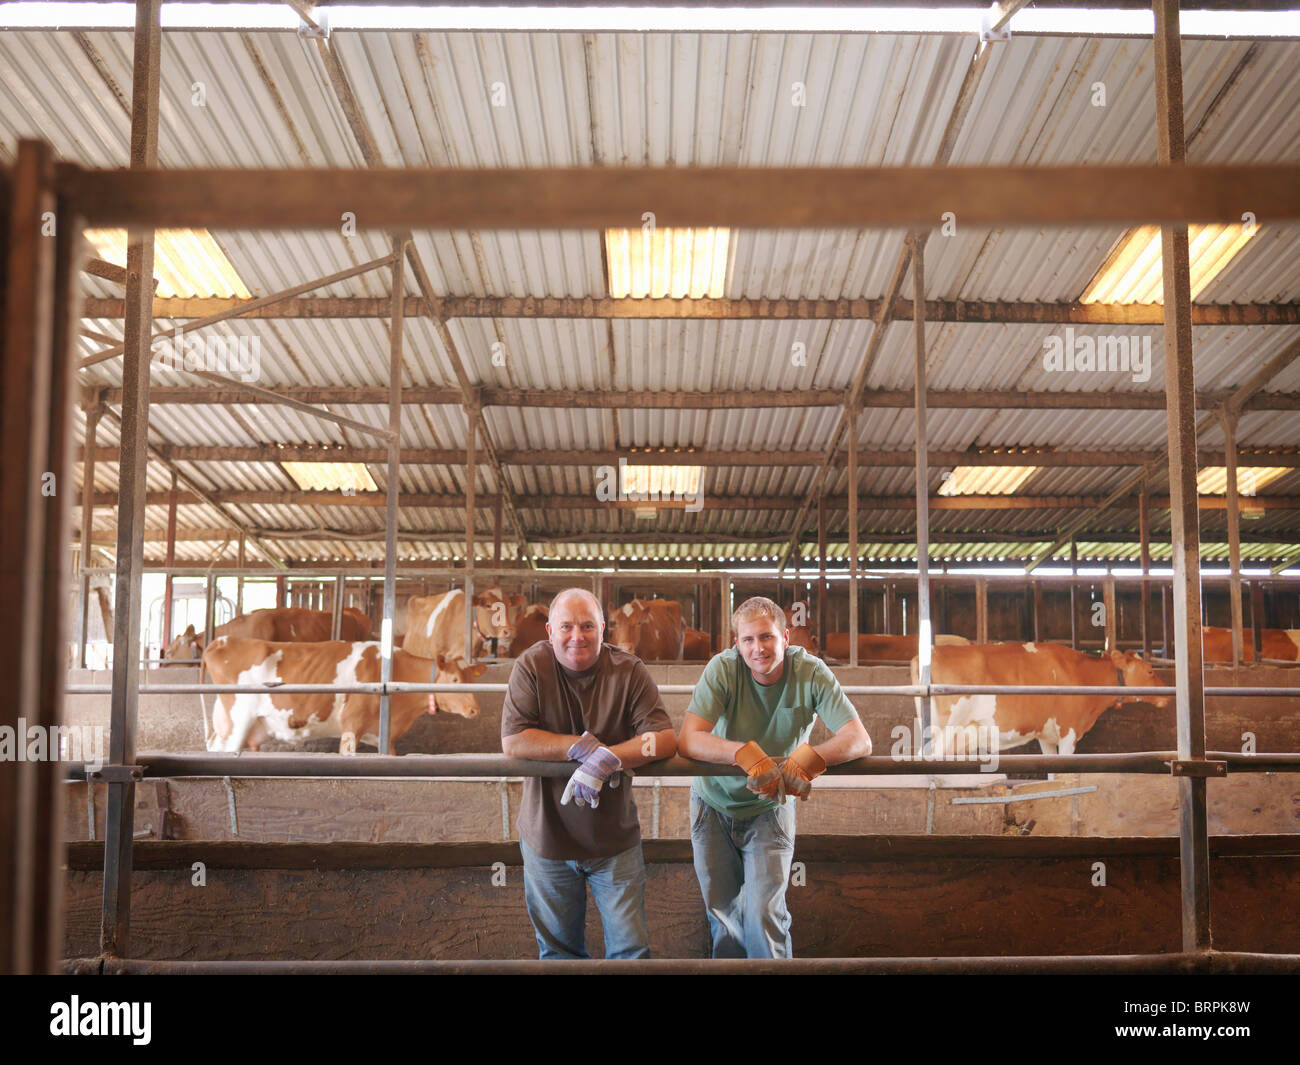 Farmer and son in milking parlor - Stock Image